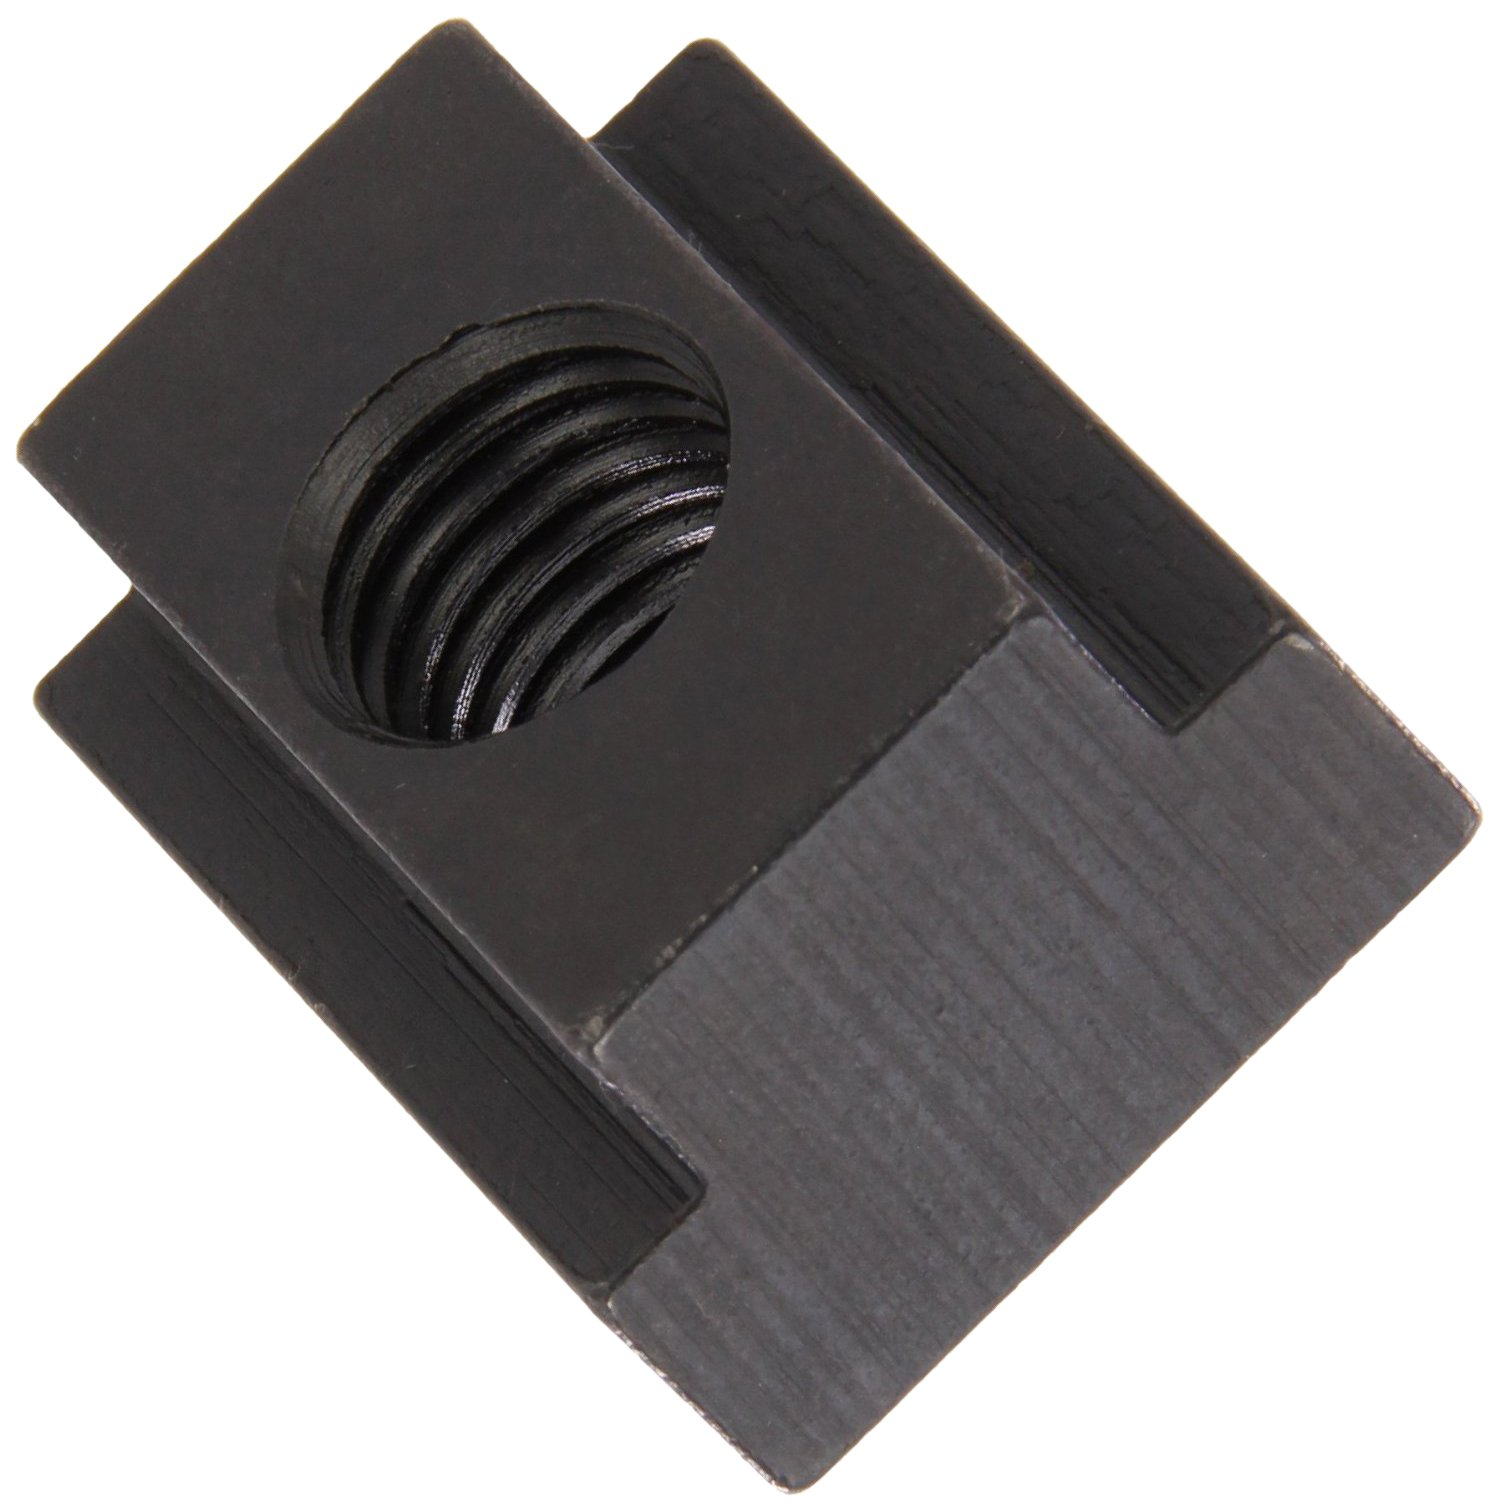 1018 Steel T-Slot Nut, Black Oxide Finish, Grade 2, Tapped Through, 3/4''-10 Threads, 1'' Height, 7/8'' Slot Depth, Made in US (Pack of 2)